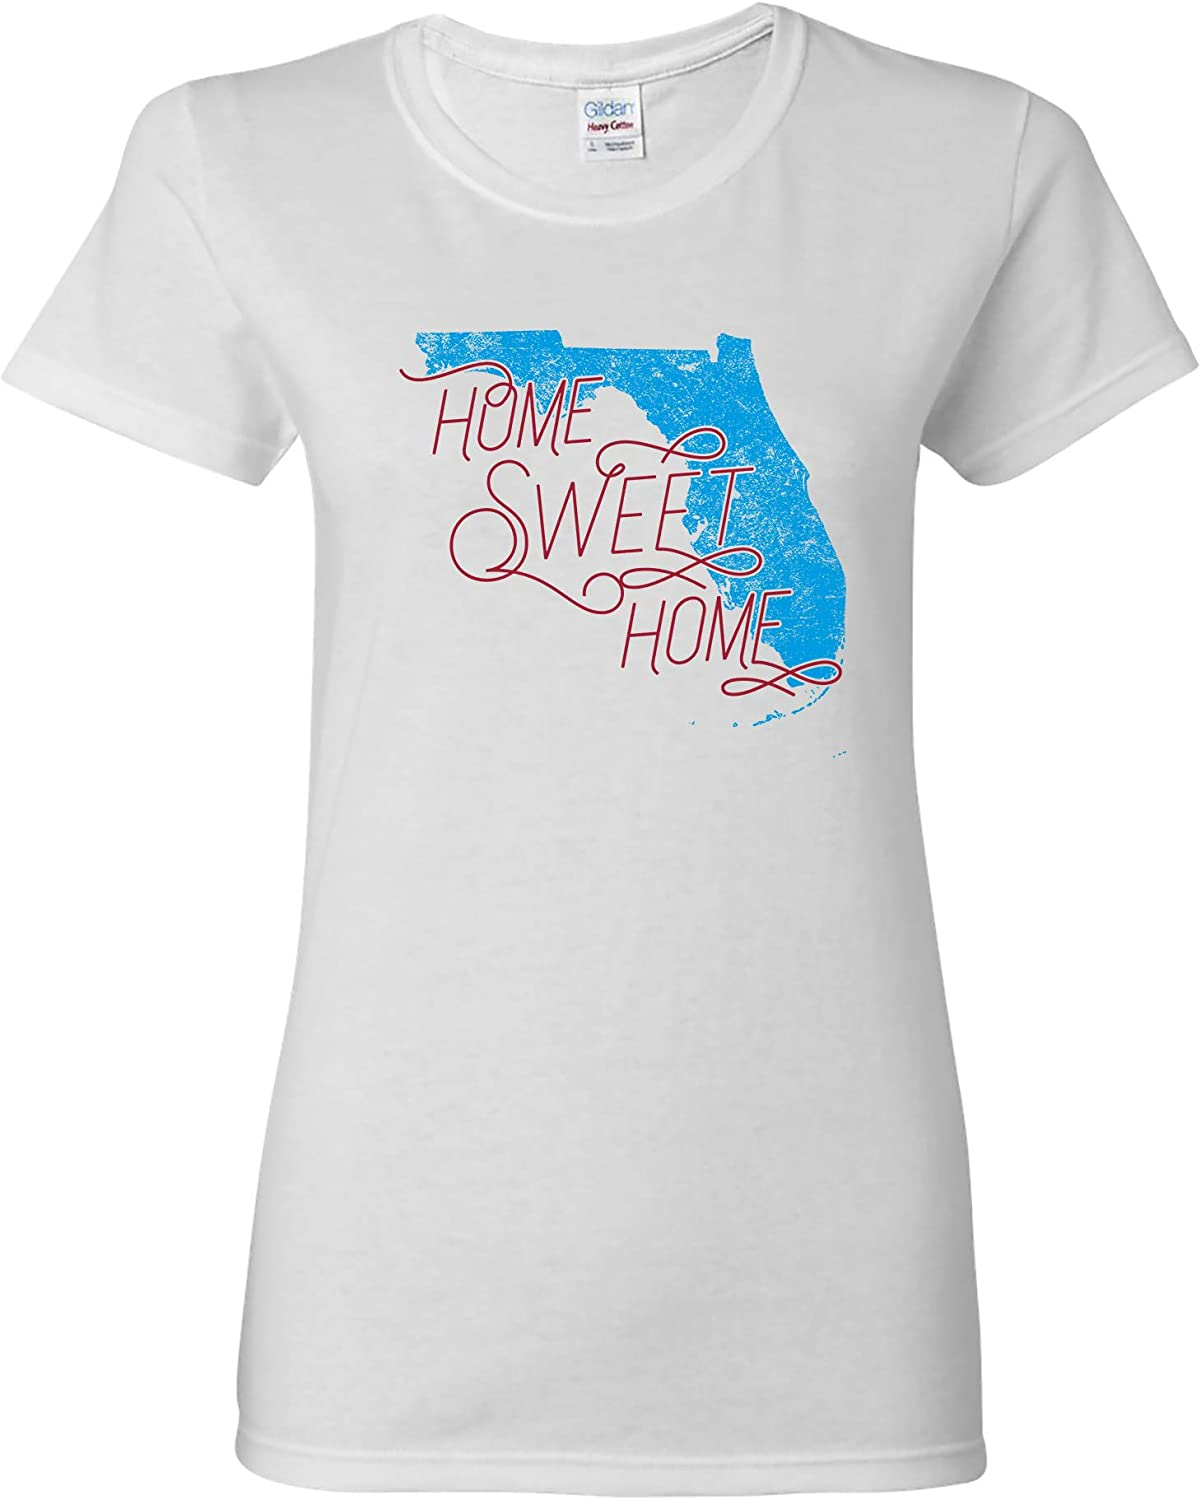 UGP Campus Apparel Florida Home Sweet Home - State America Pride Womens T Shirt - Small - White